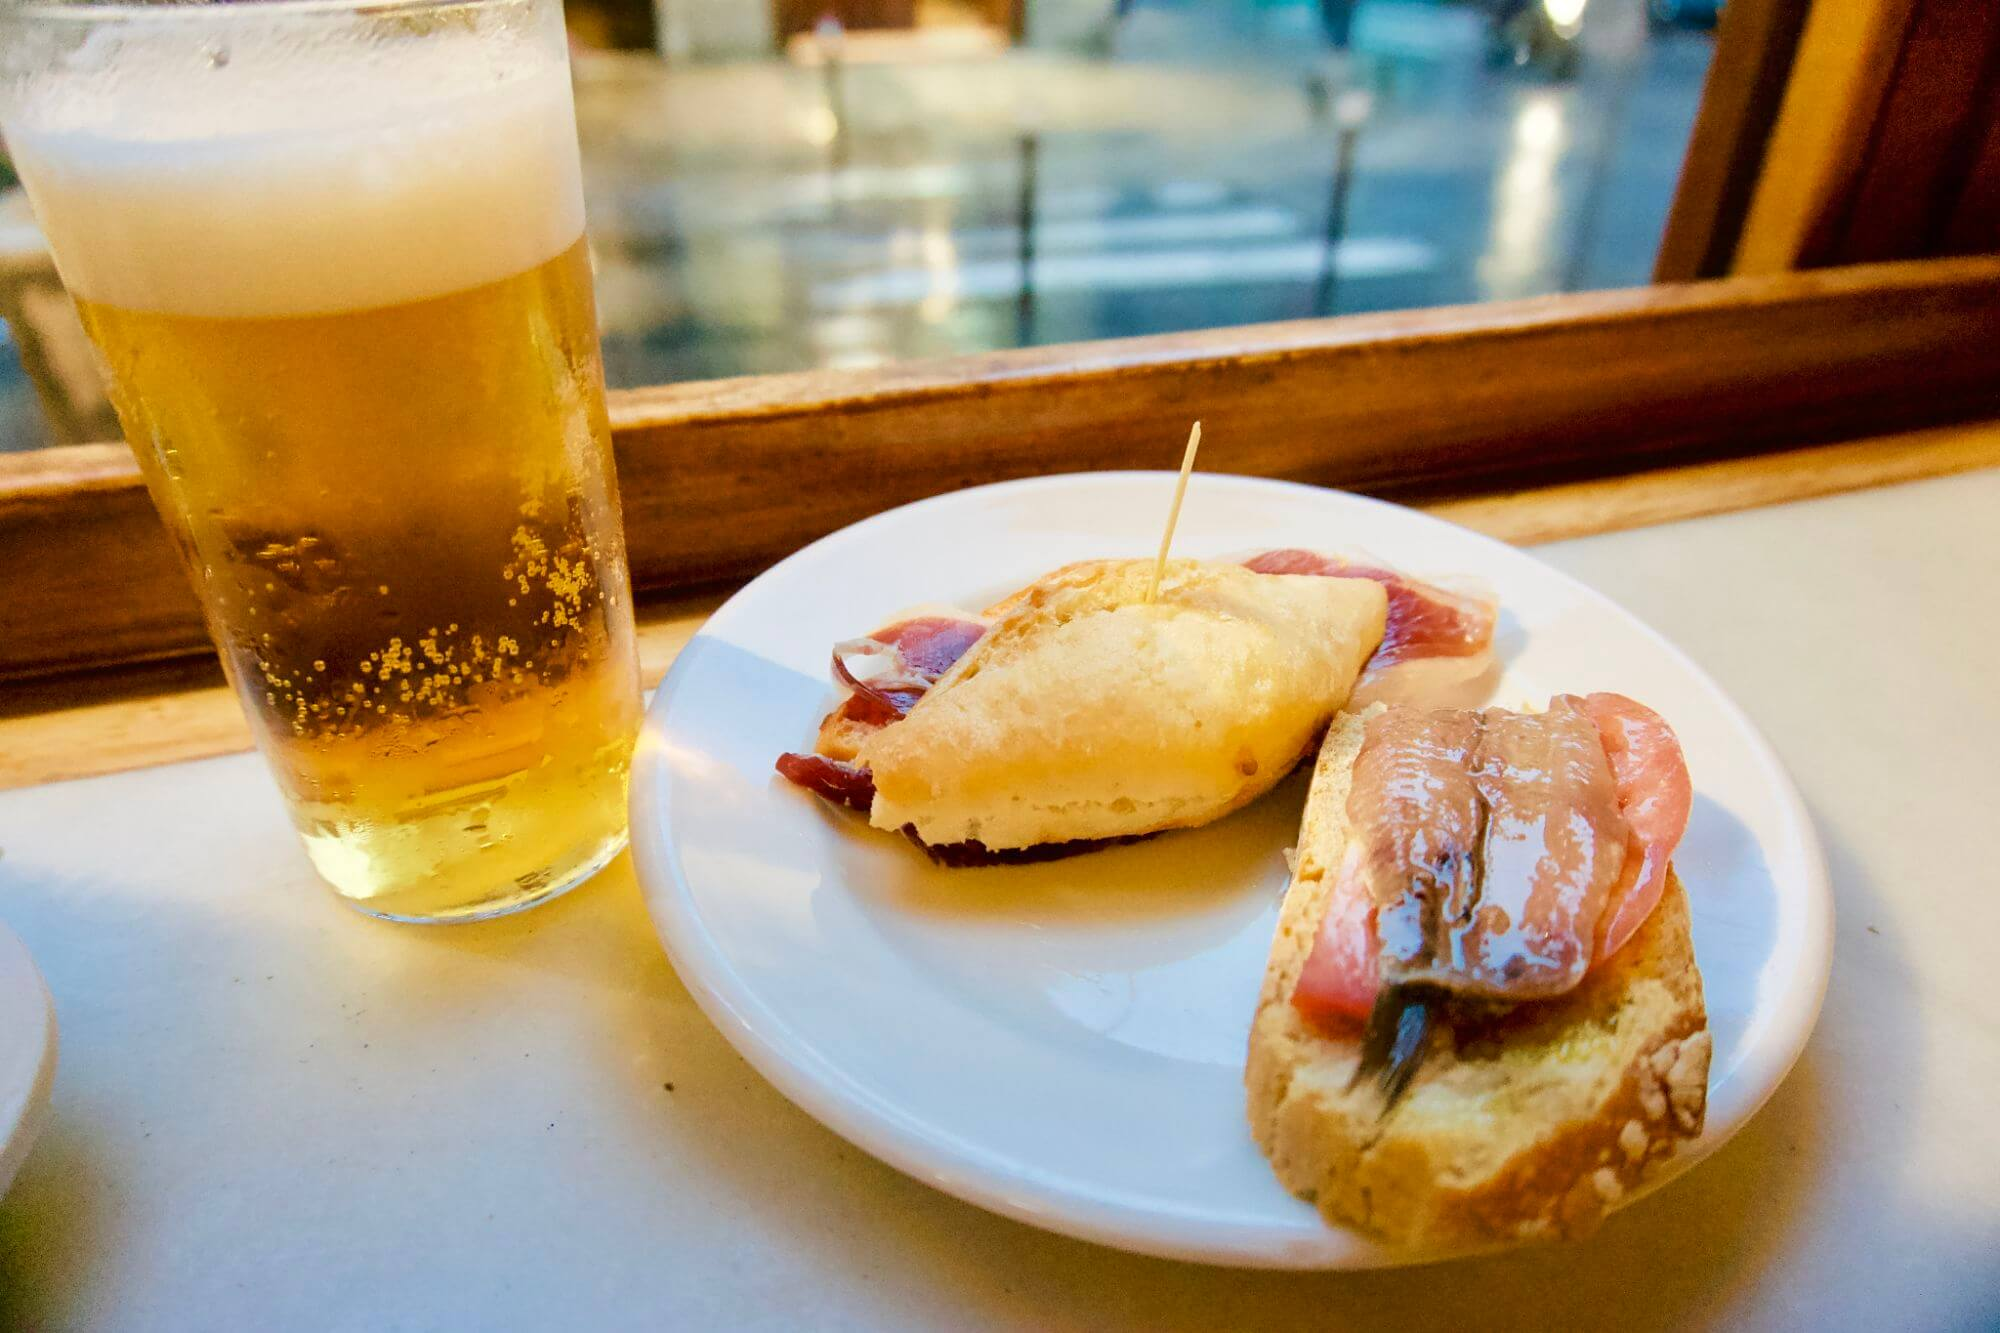 Tapas and beer at a neighborhood bar